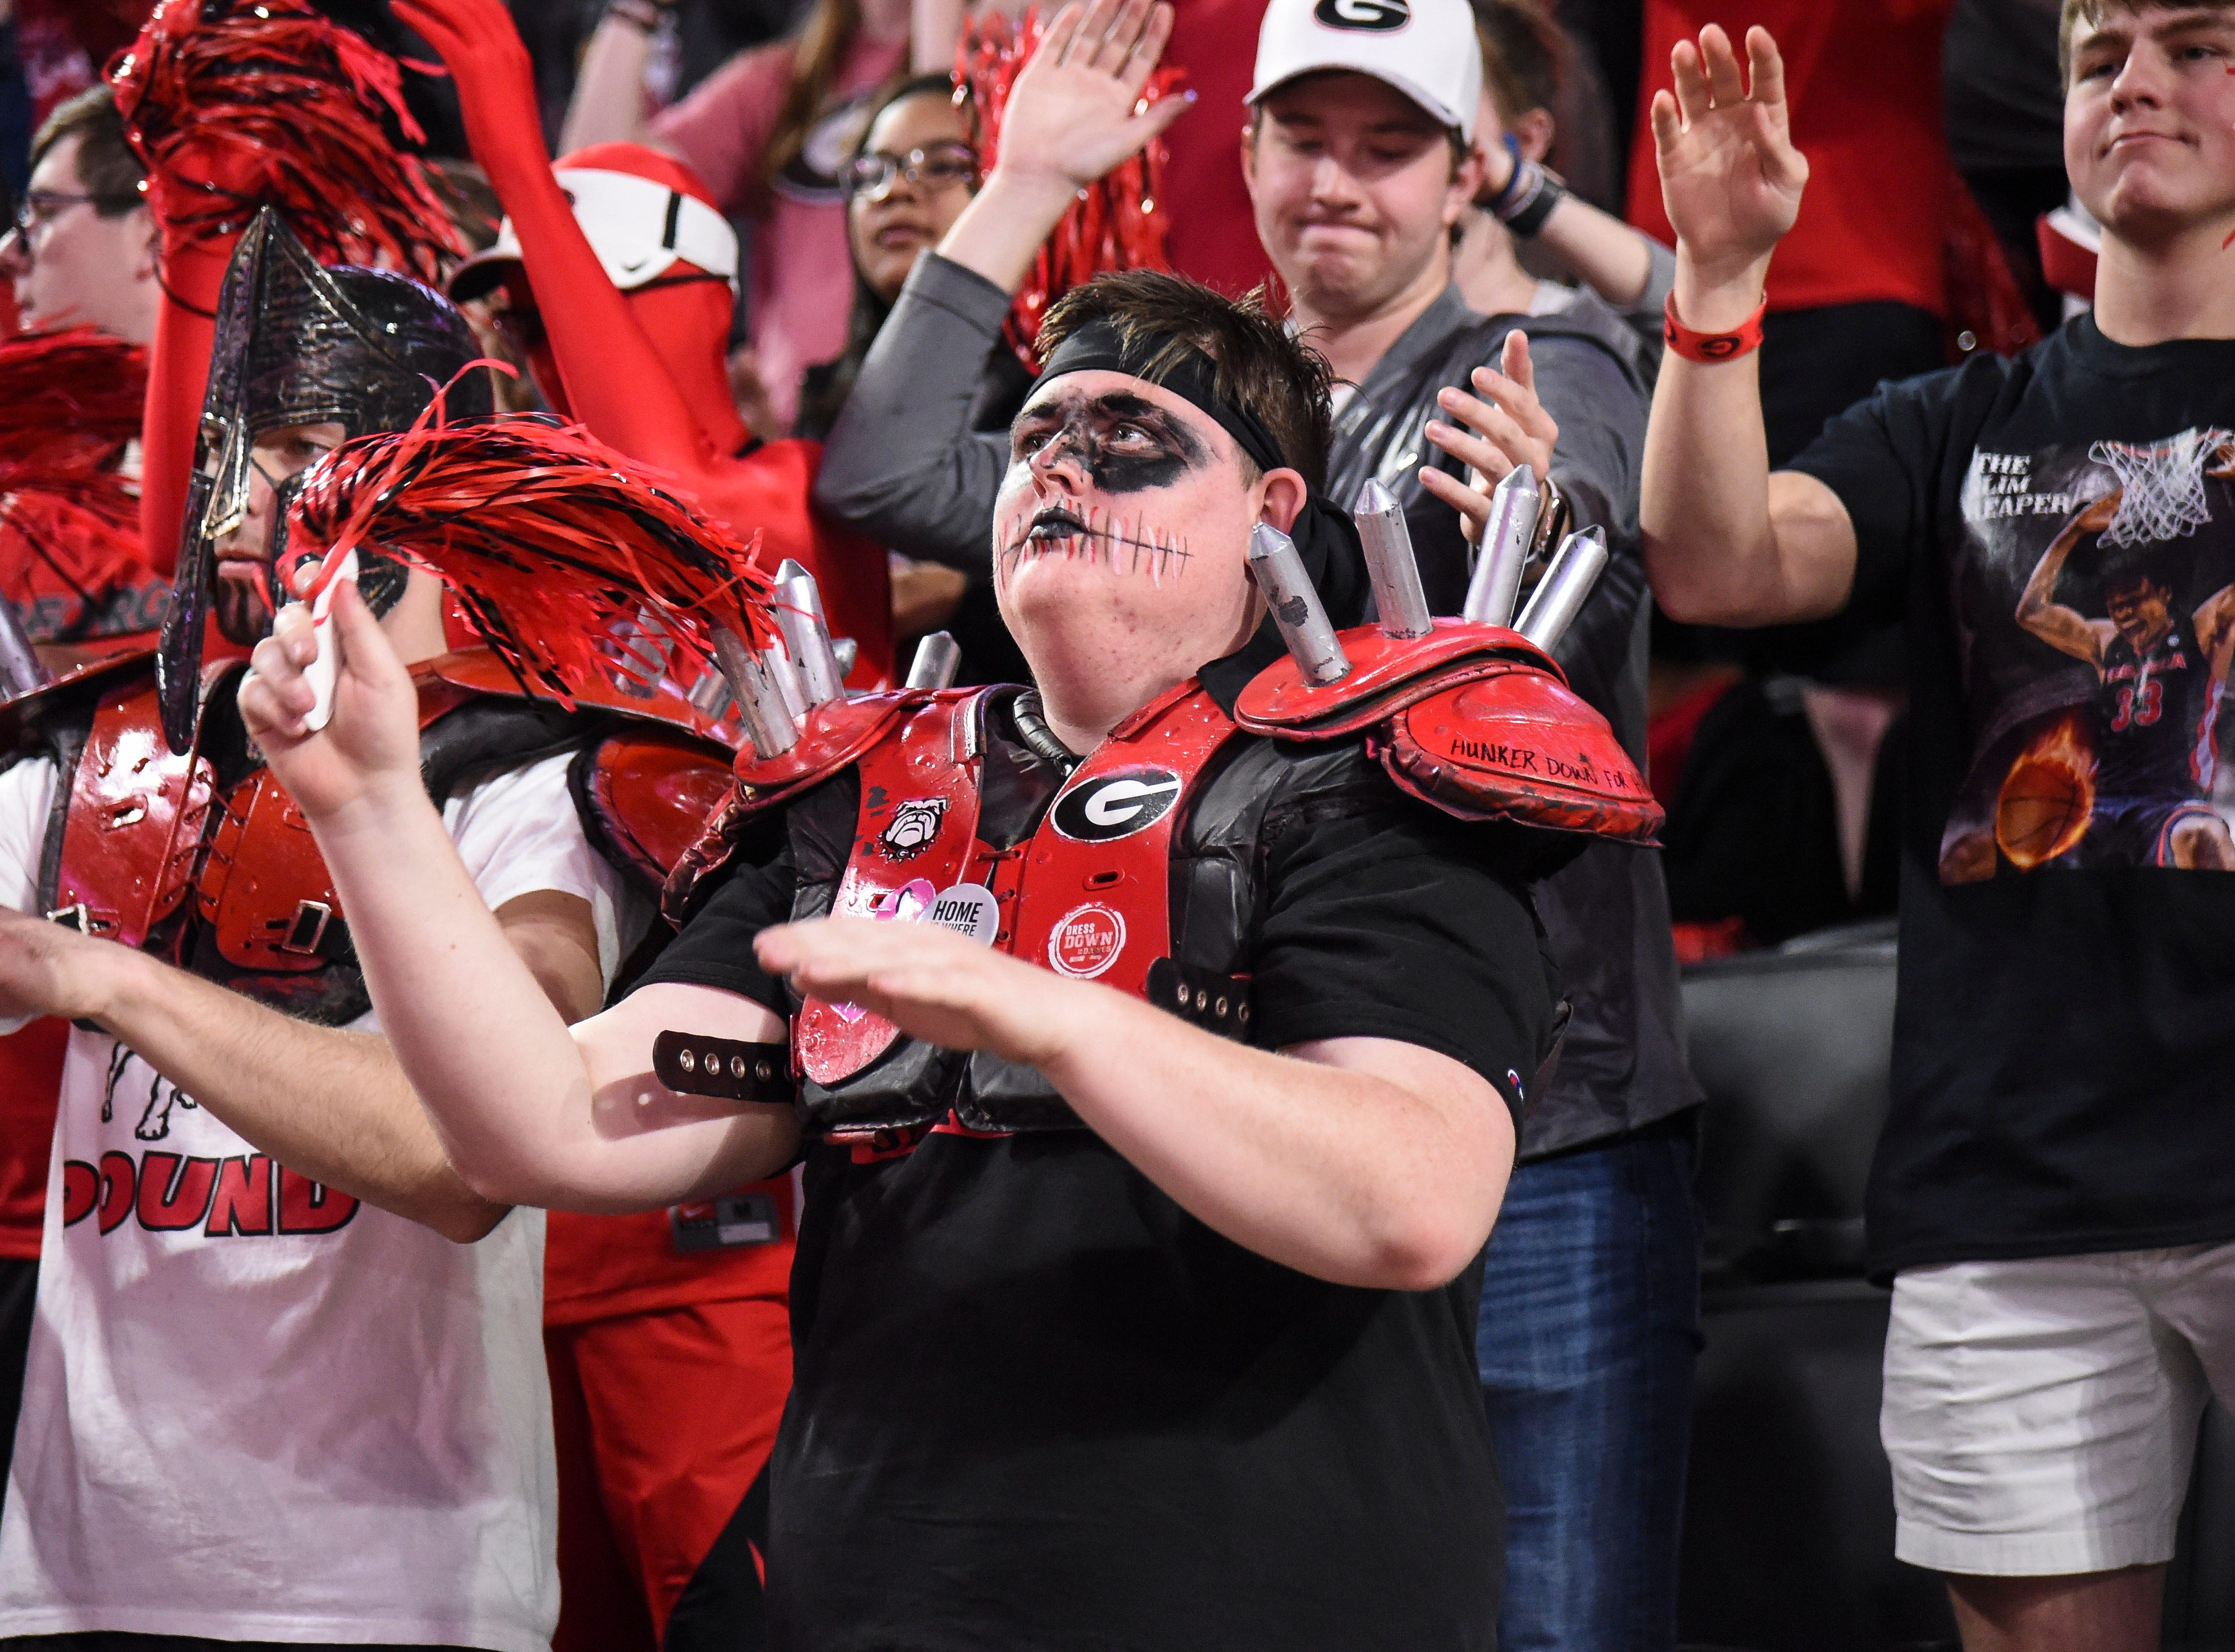 Feb 16, 2019; Athens, GA, USA; Georgia Bulldogs fans cheer for their team against the LSU Tigers during the first half at Stegeman Coliseum. Mandatory Credit: Dale Zanine-USA TODAY Sports